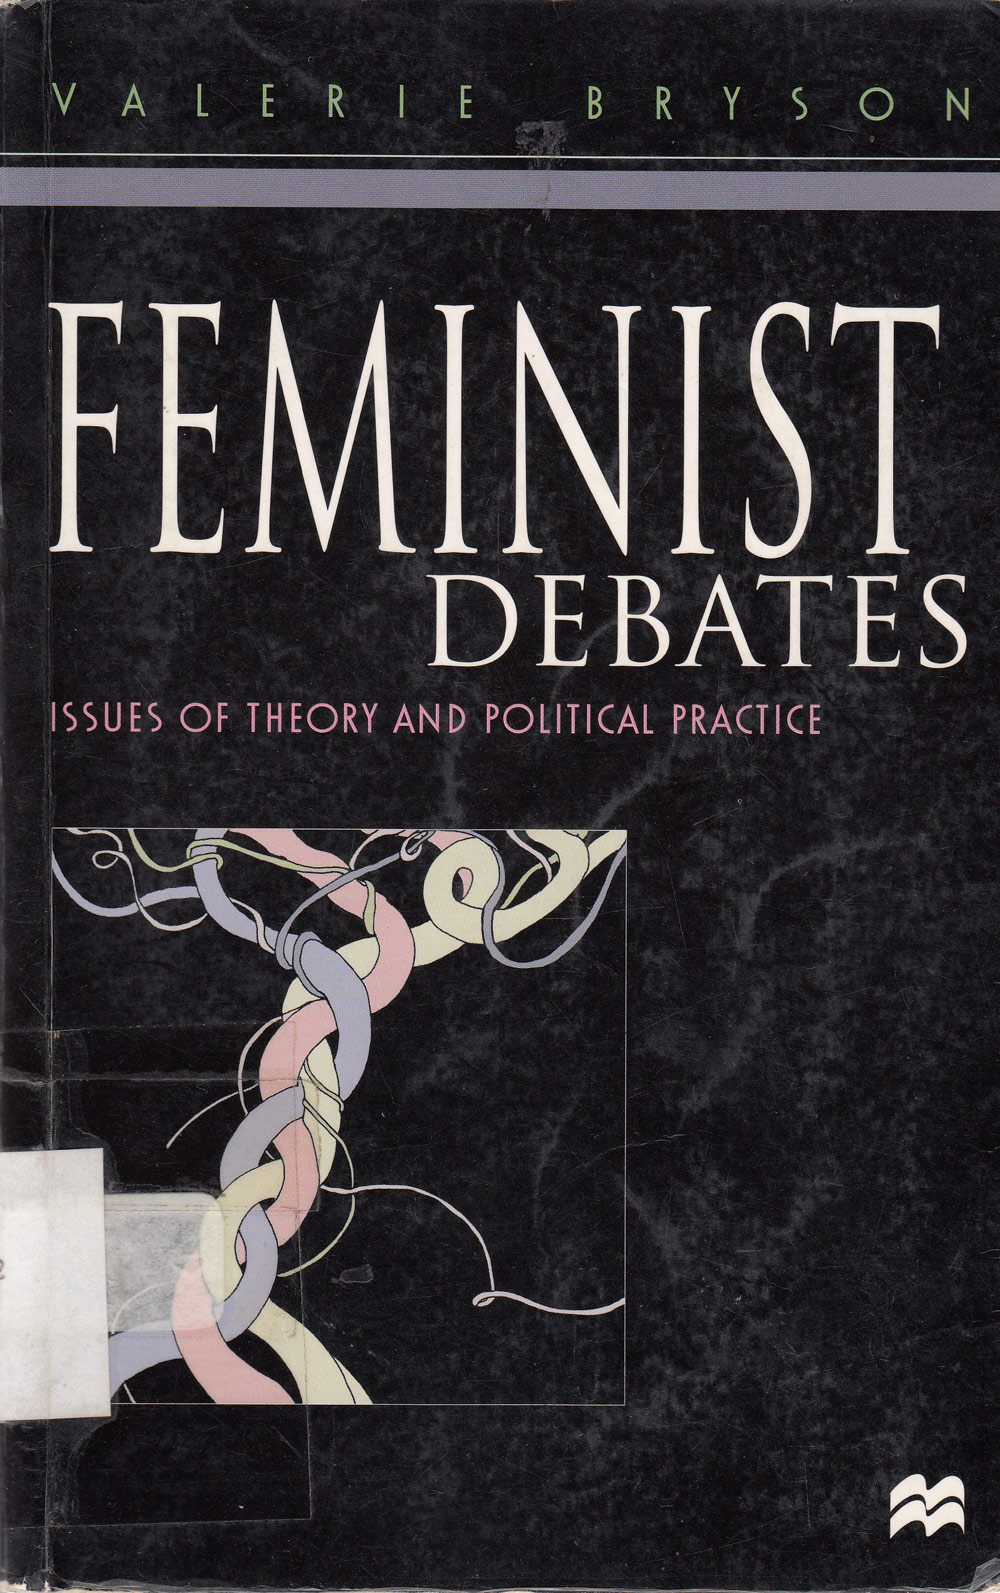 Feminist debates : issues of theory and political practice / Valerie